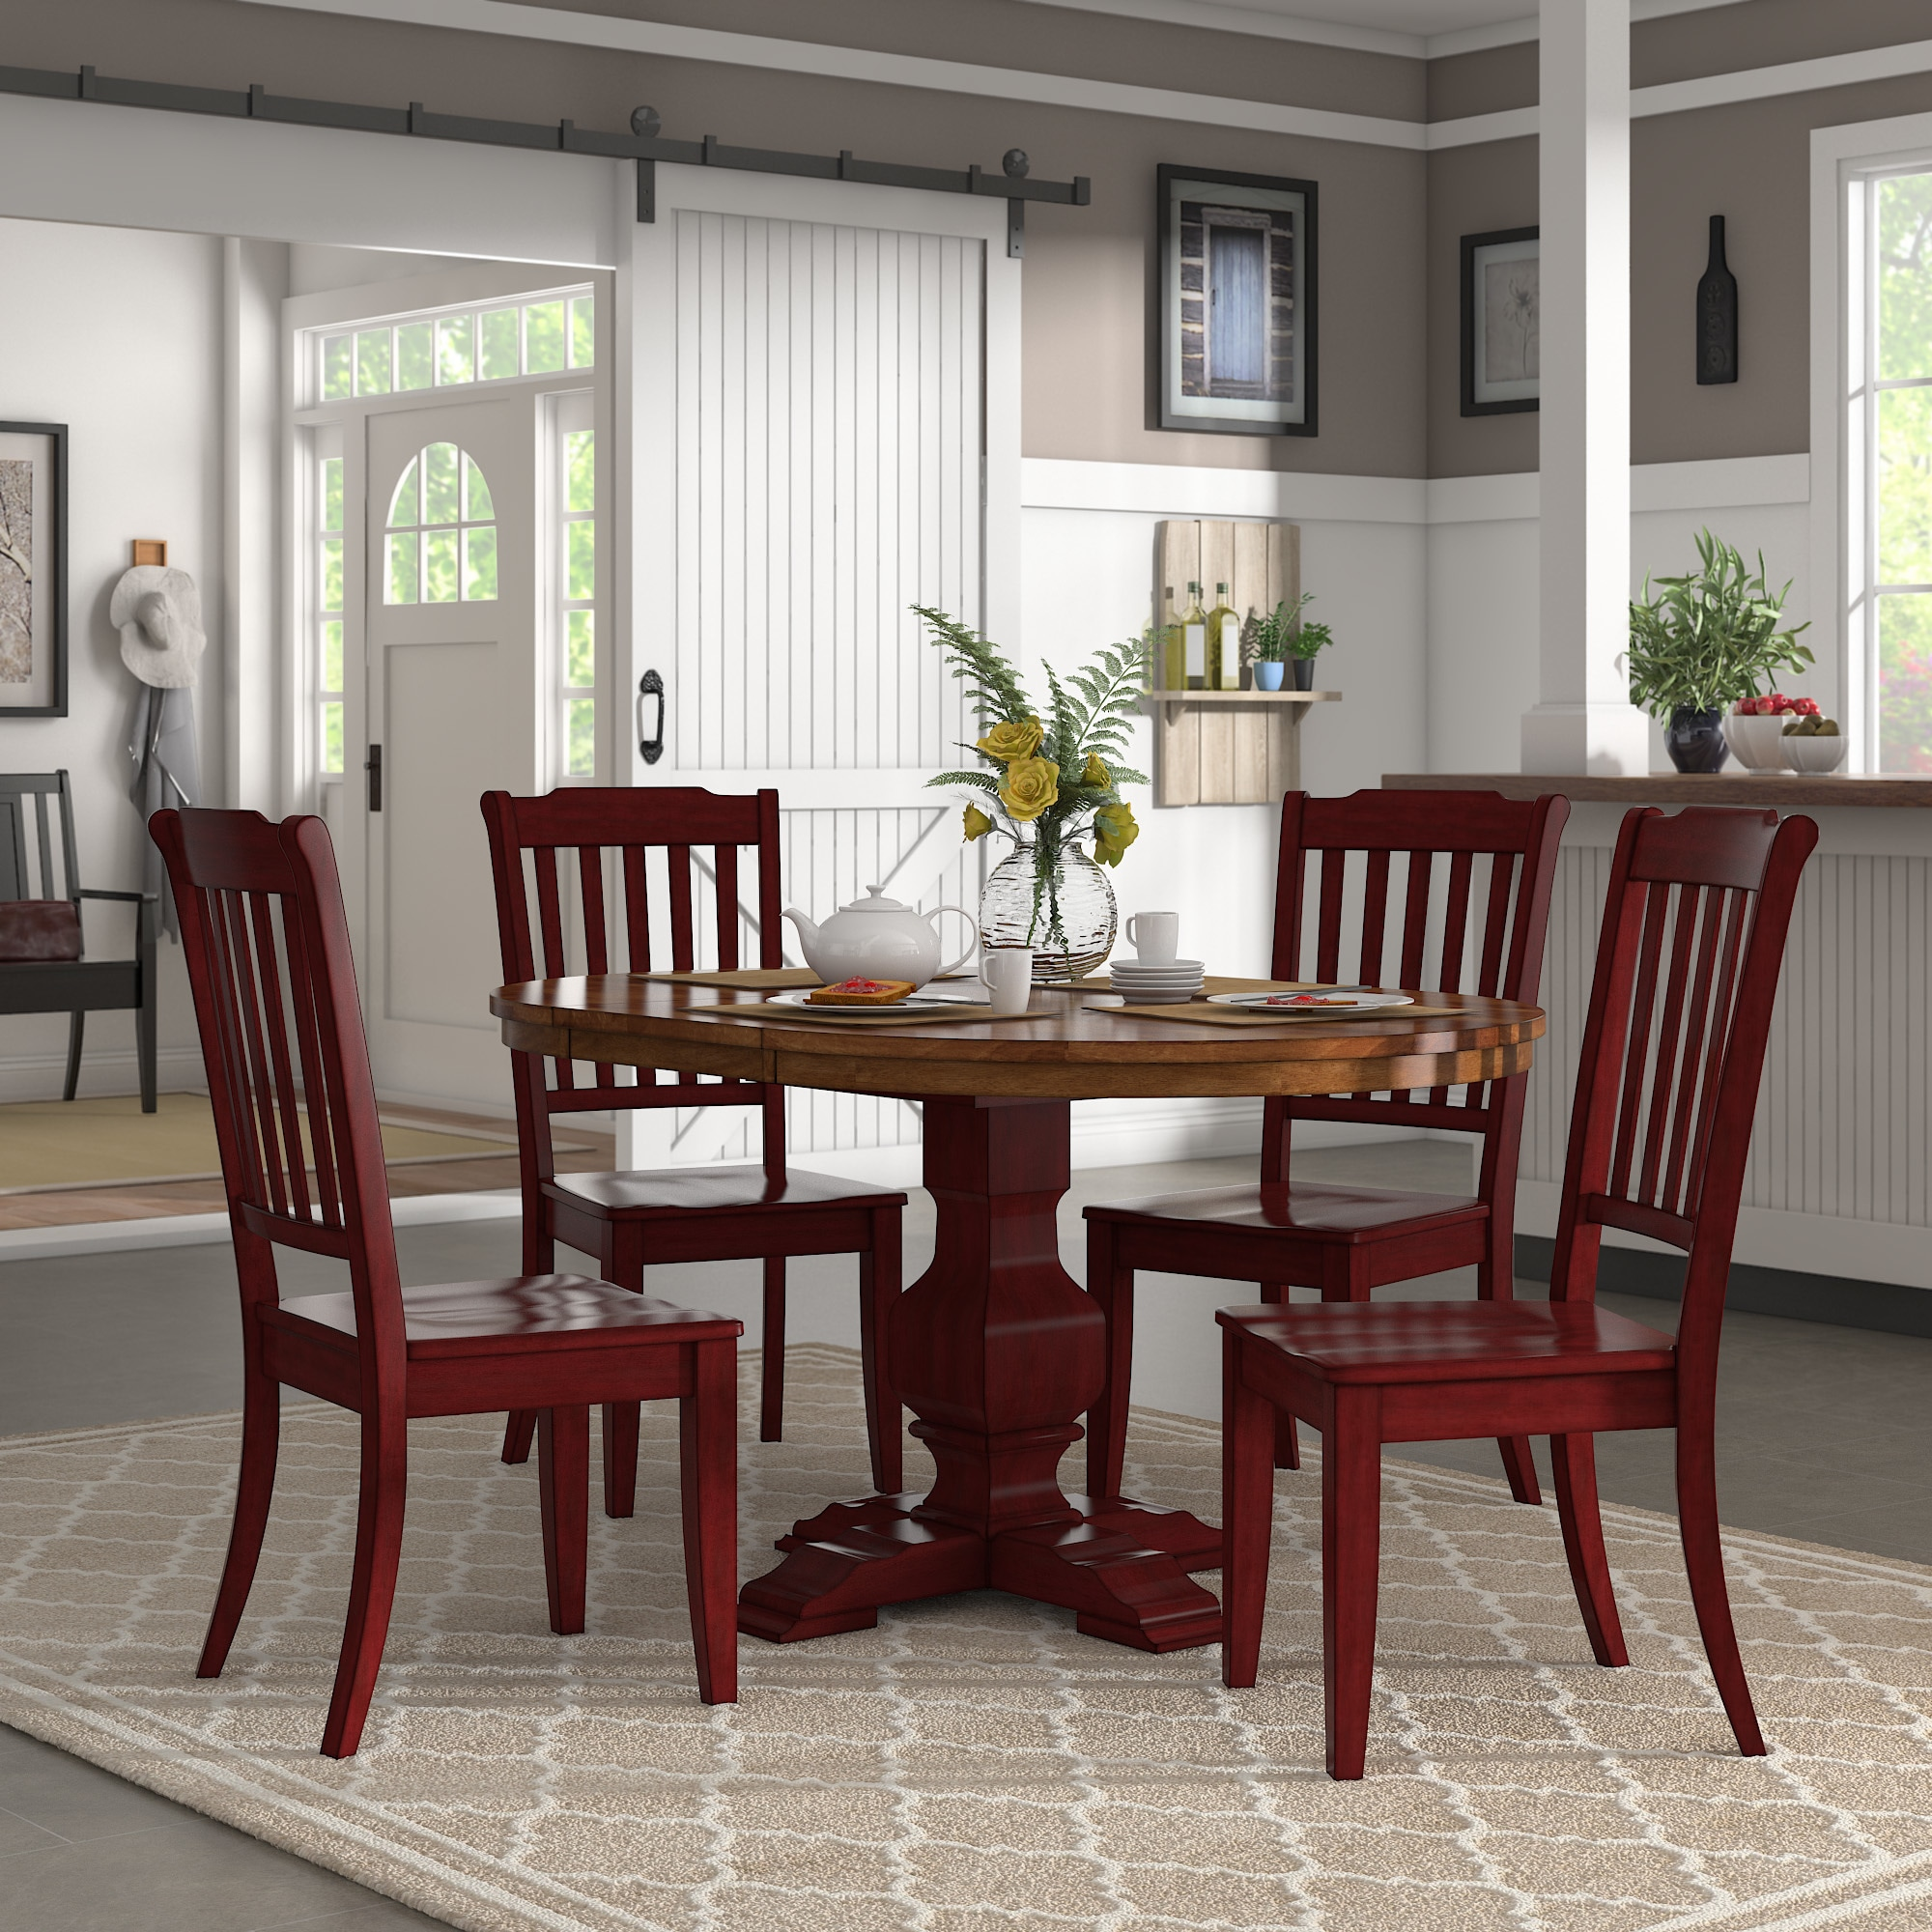 Eleanor berry red extending oval wood table slat back 5 piece dining set by inspire q classic